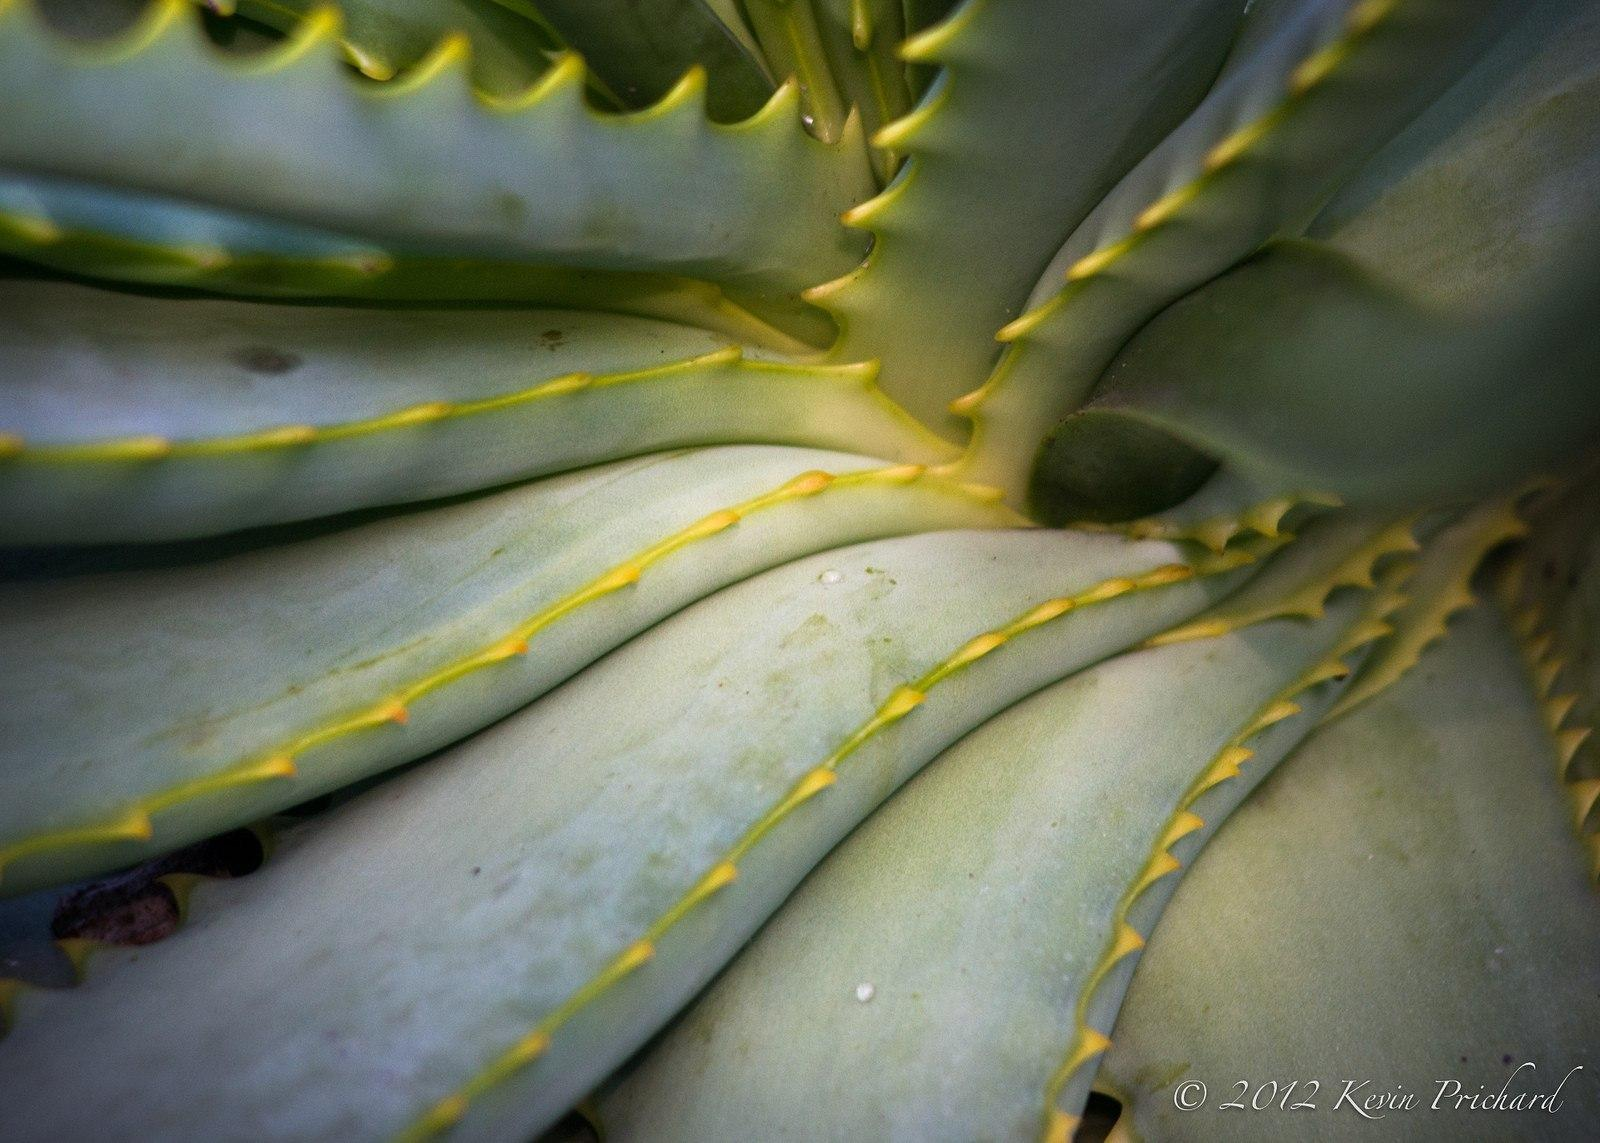 How To Use Aloe Vera For Diabetes | Lower Blood Sugar | Increase Insulin | Mtspace